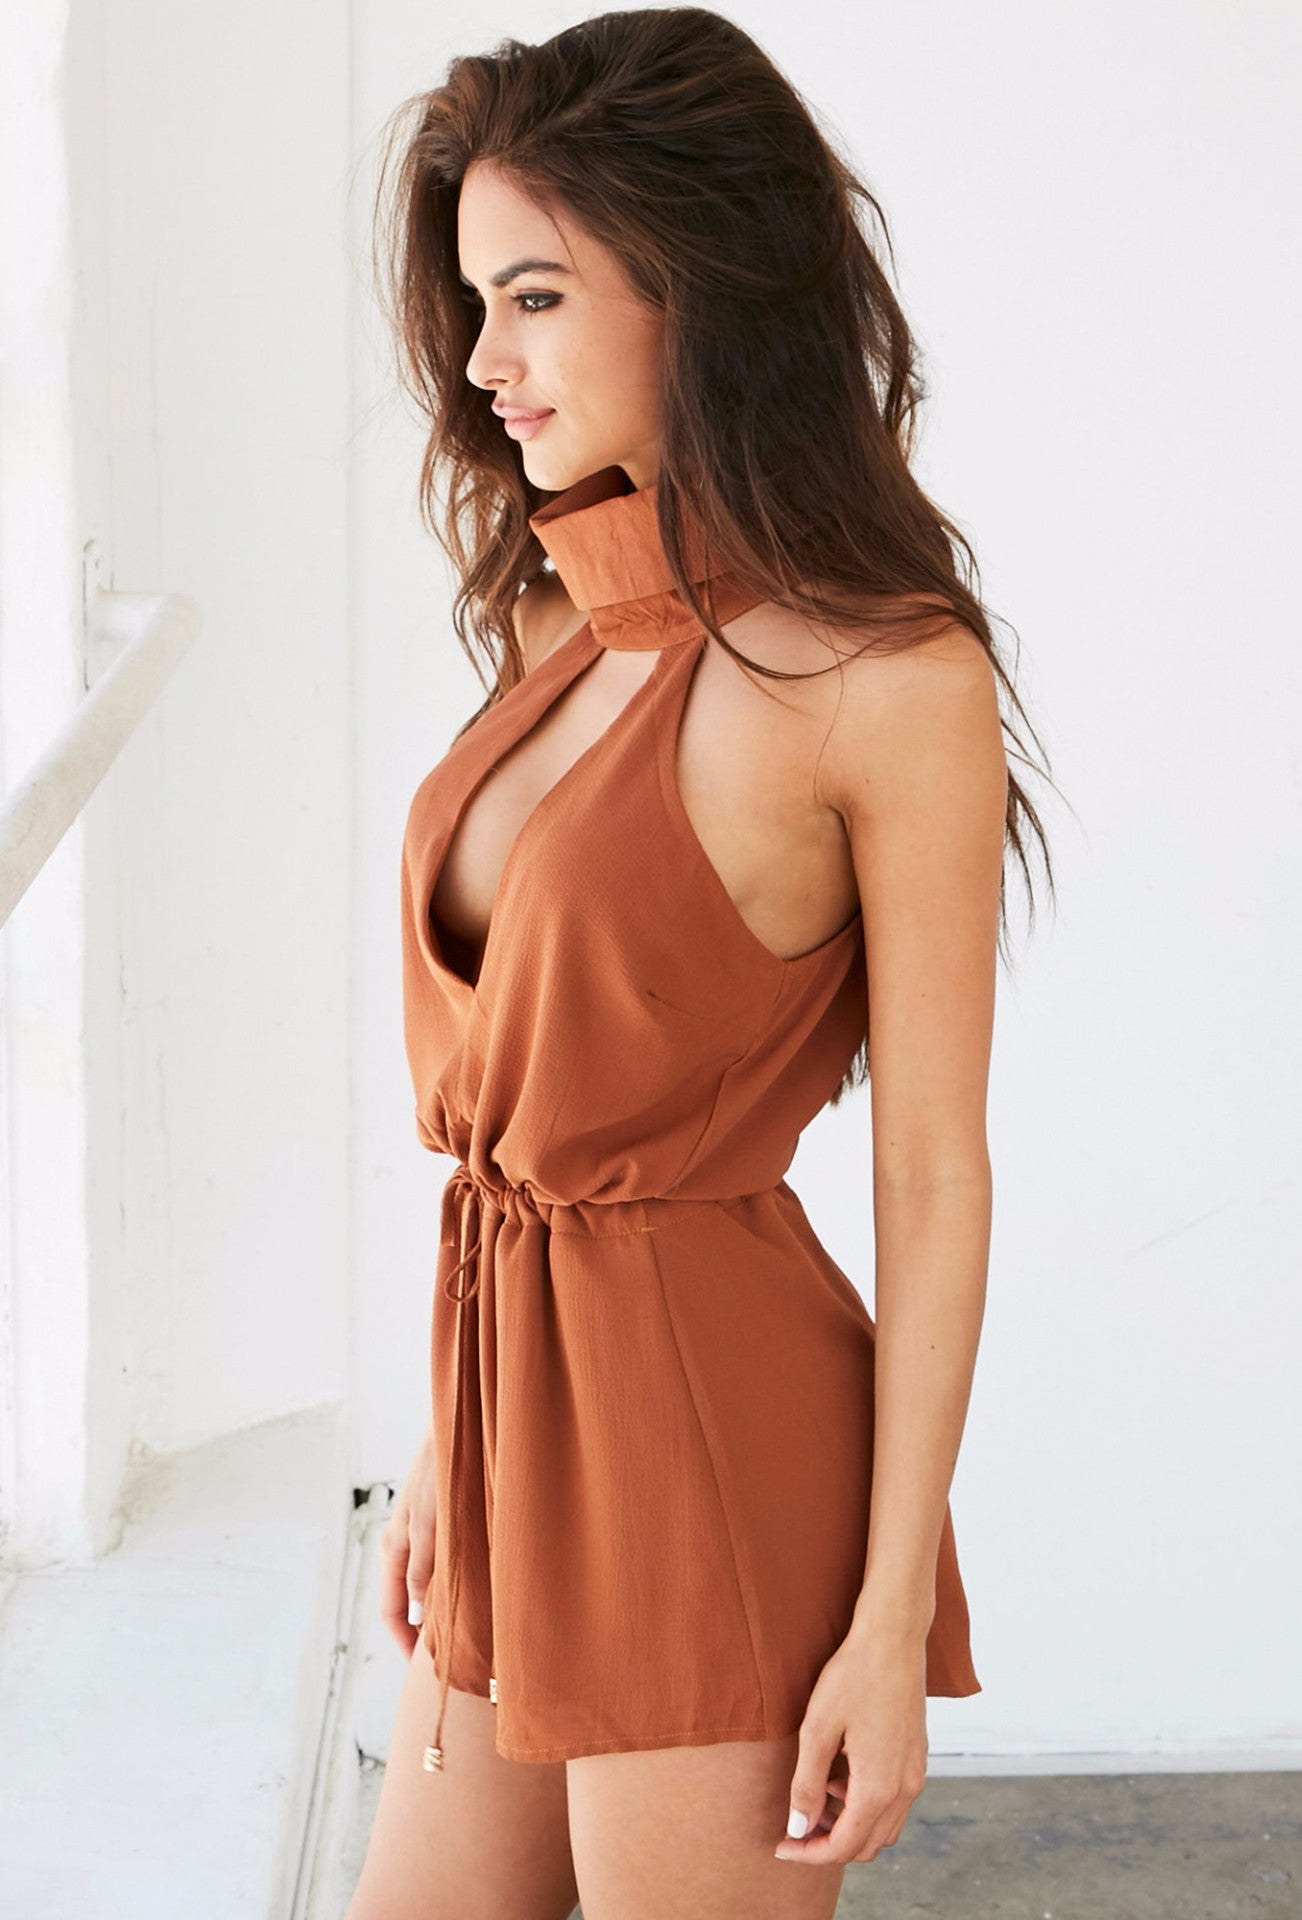 Taylor Playsuit - Orange - Lovecy - 2